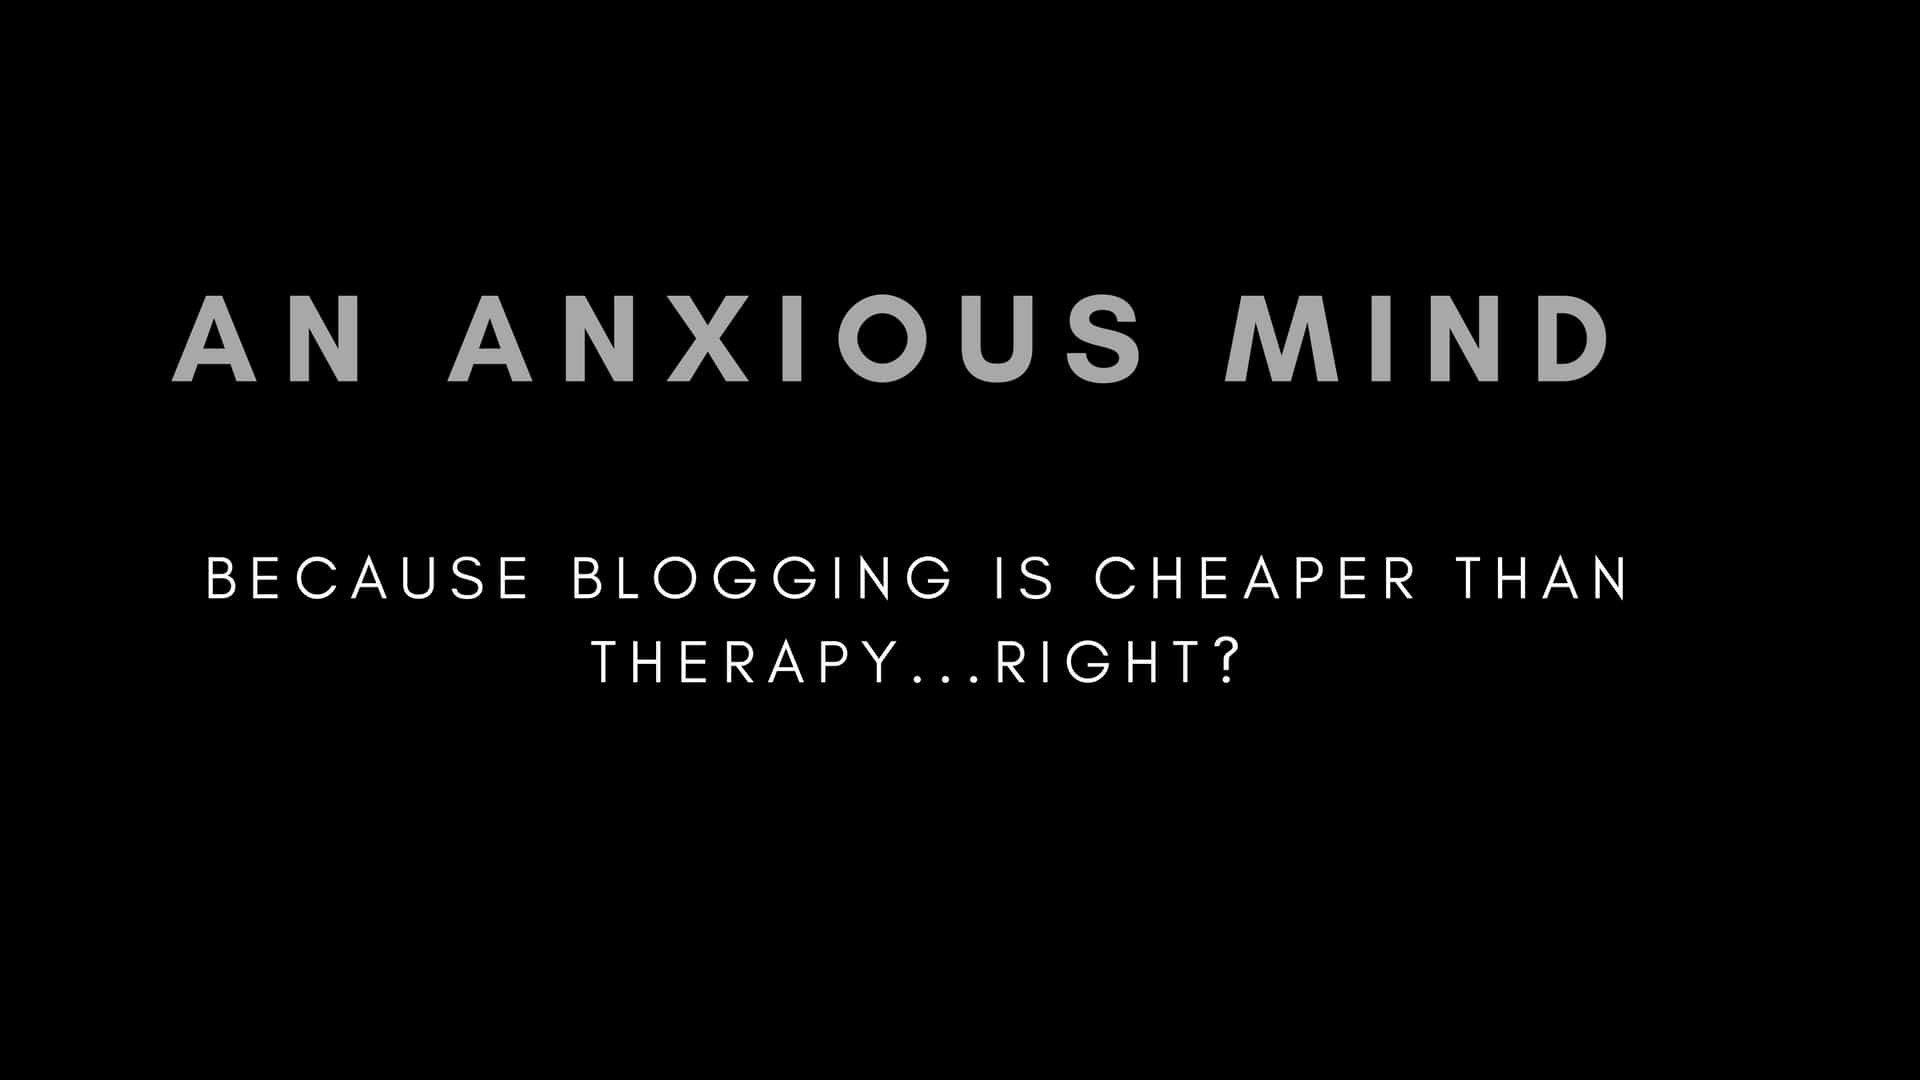 blogging is cheaper than therapy